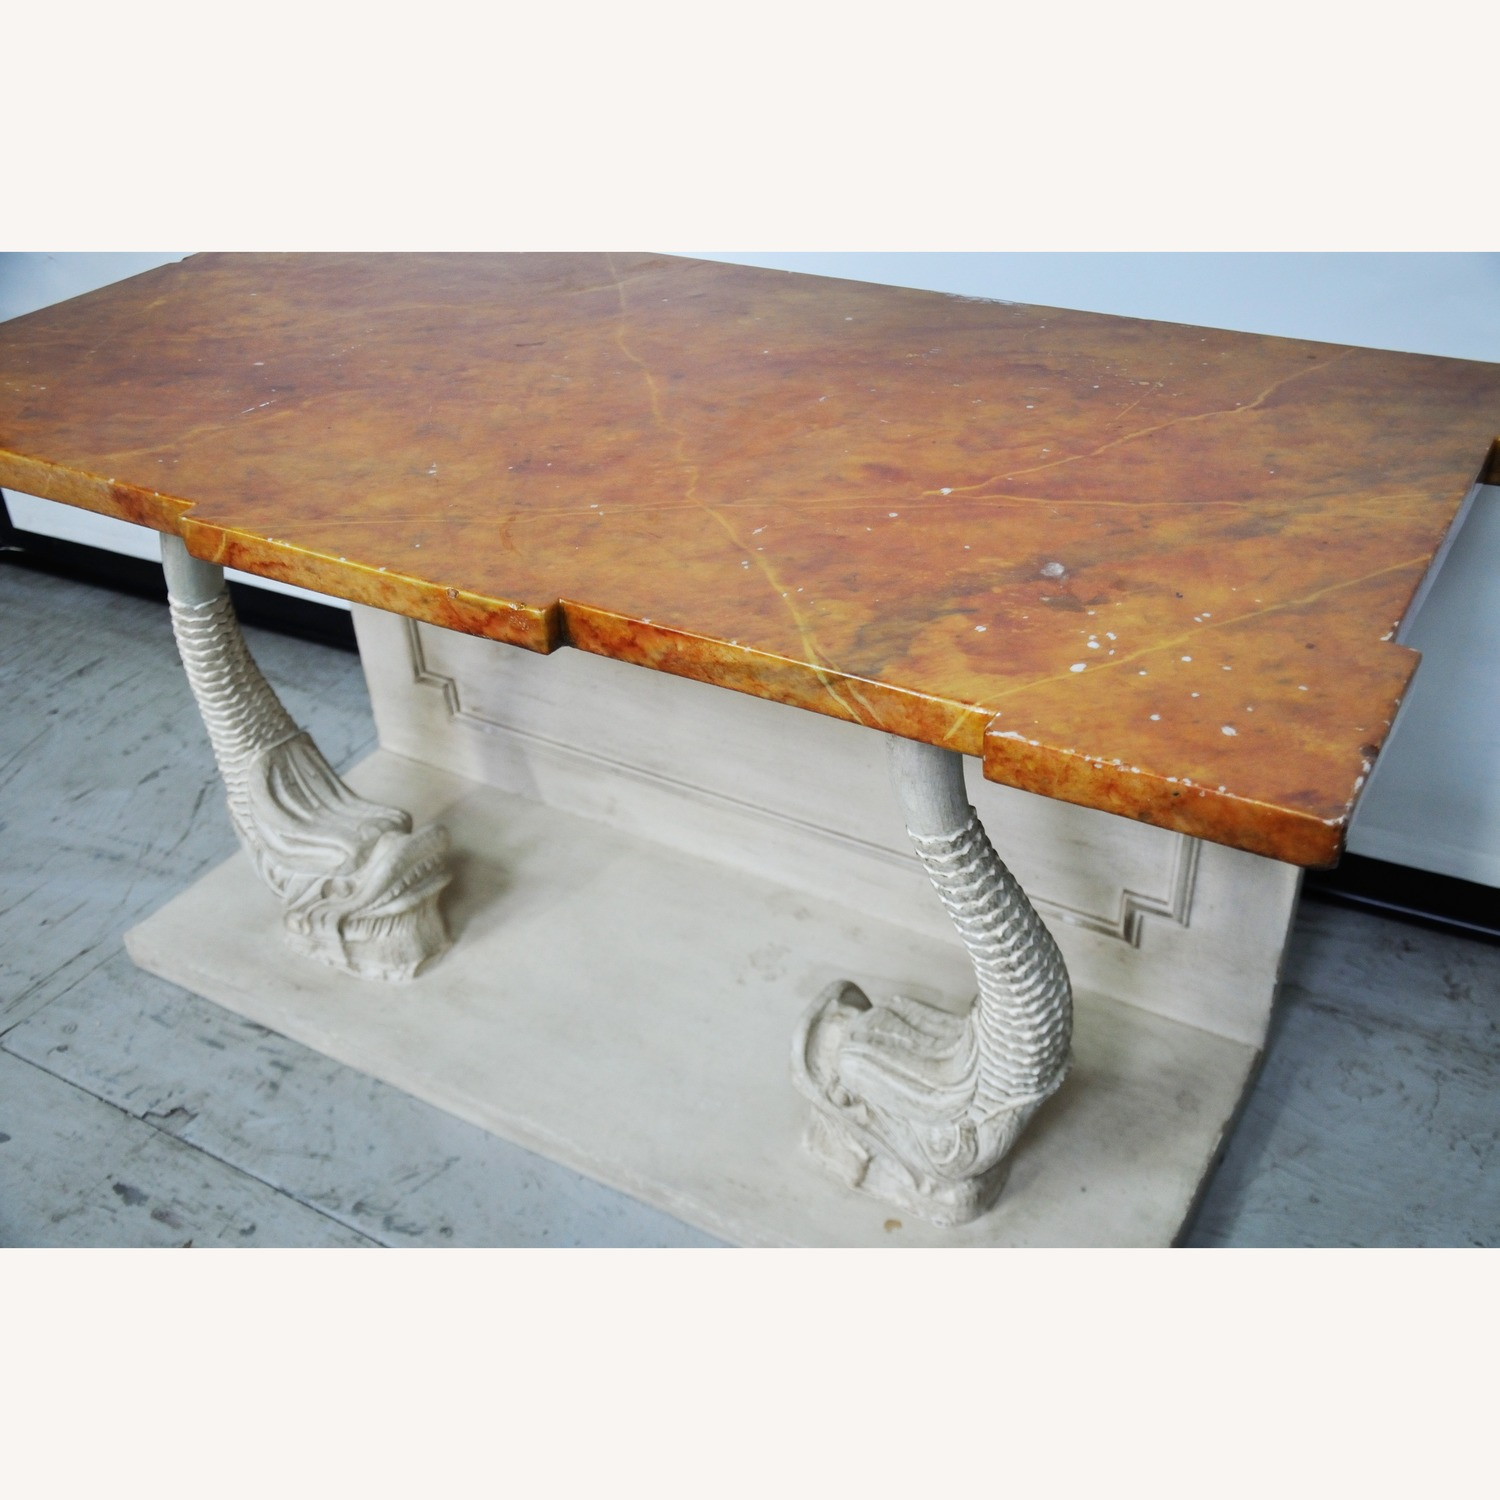 Indian Carved Side Table w/ Marble Top - image-11